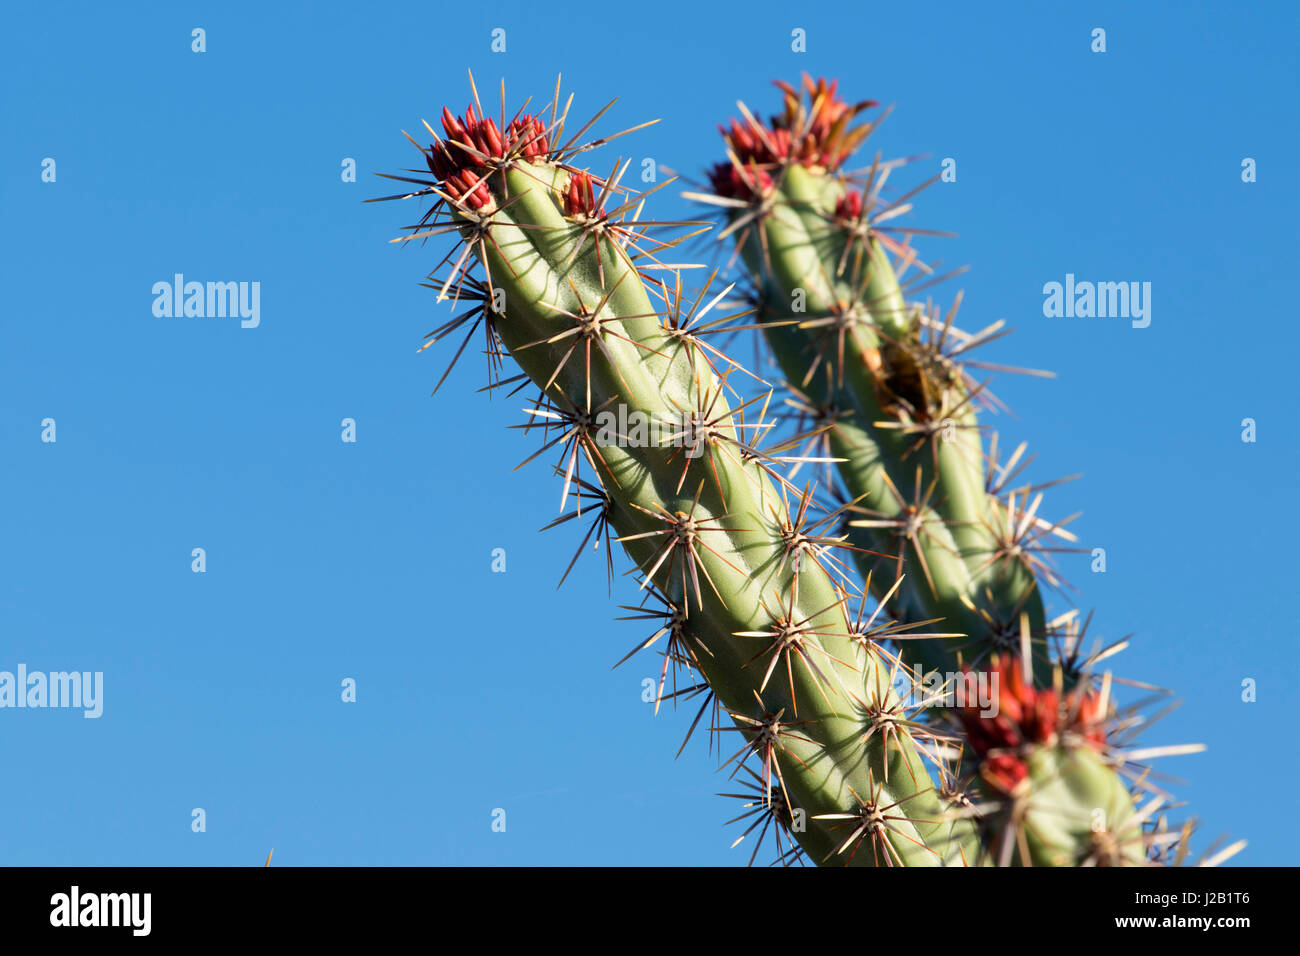 Buckhorn cholla cactus along Escondido Trail, McDowell Mountain Regional Park, Maricopa County, Arizona Stock Photo